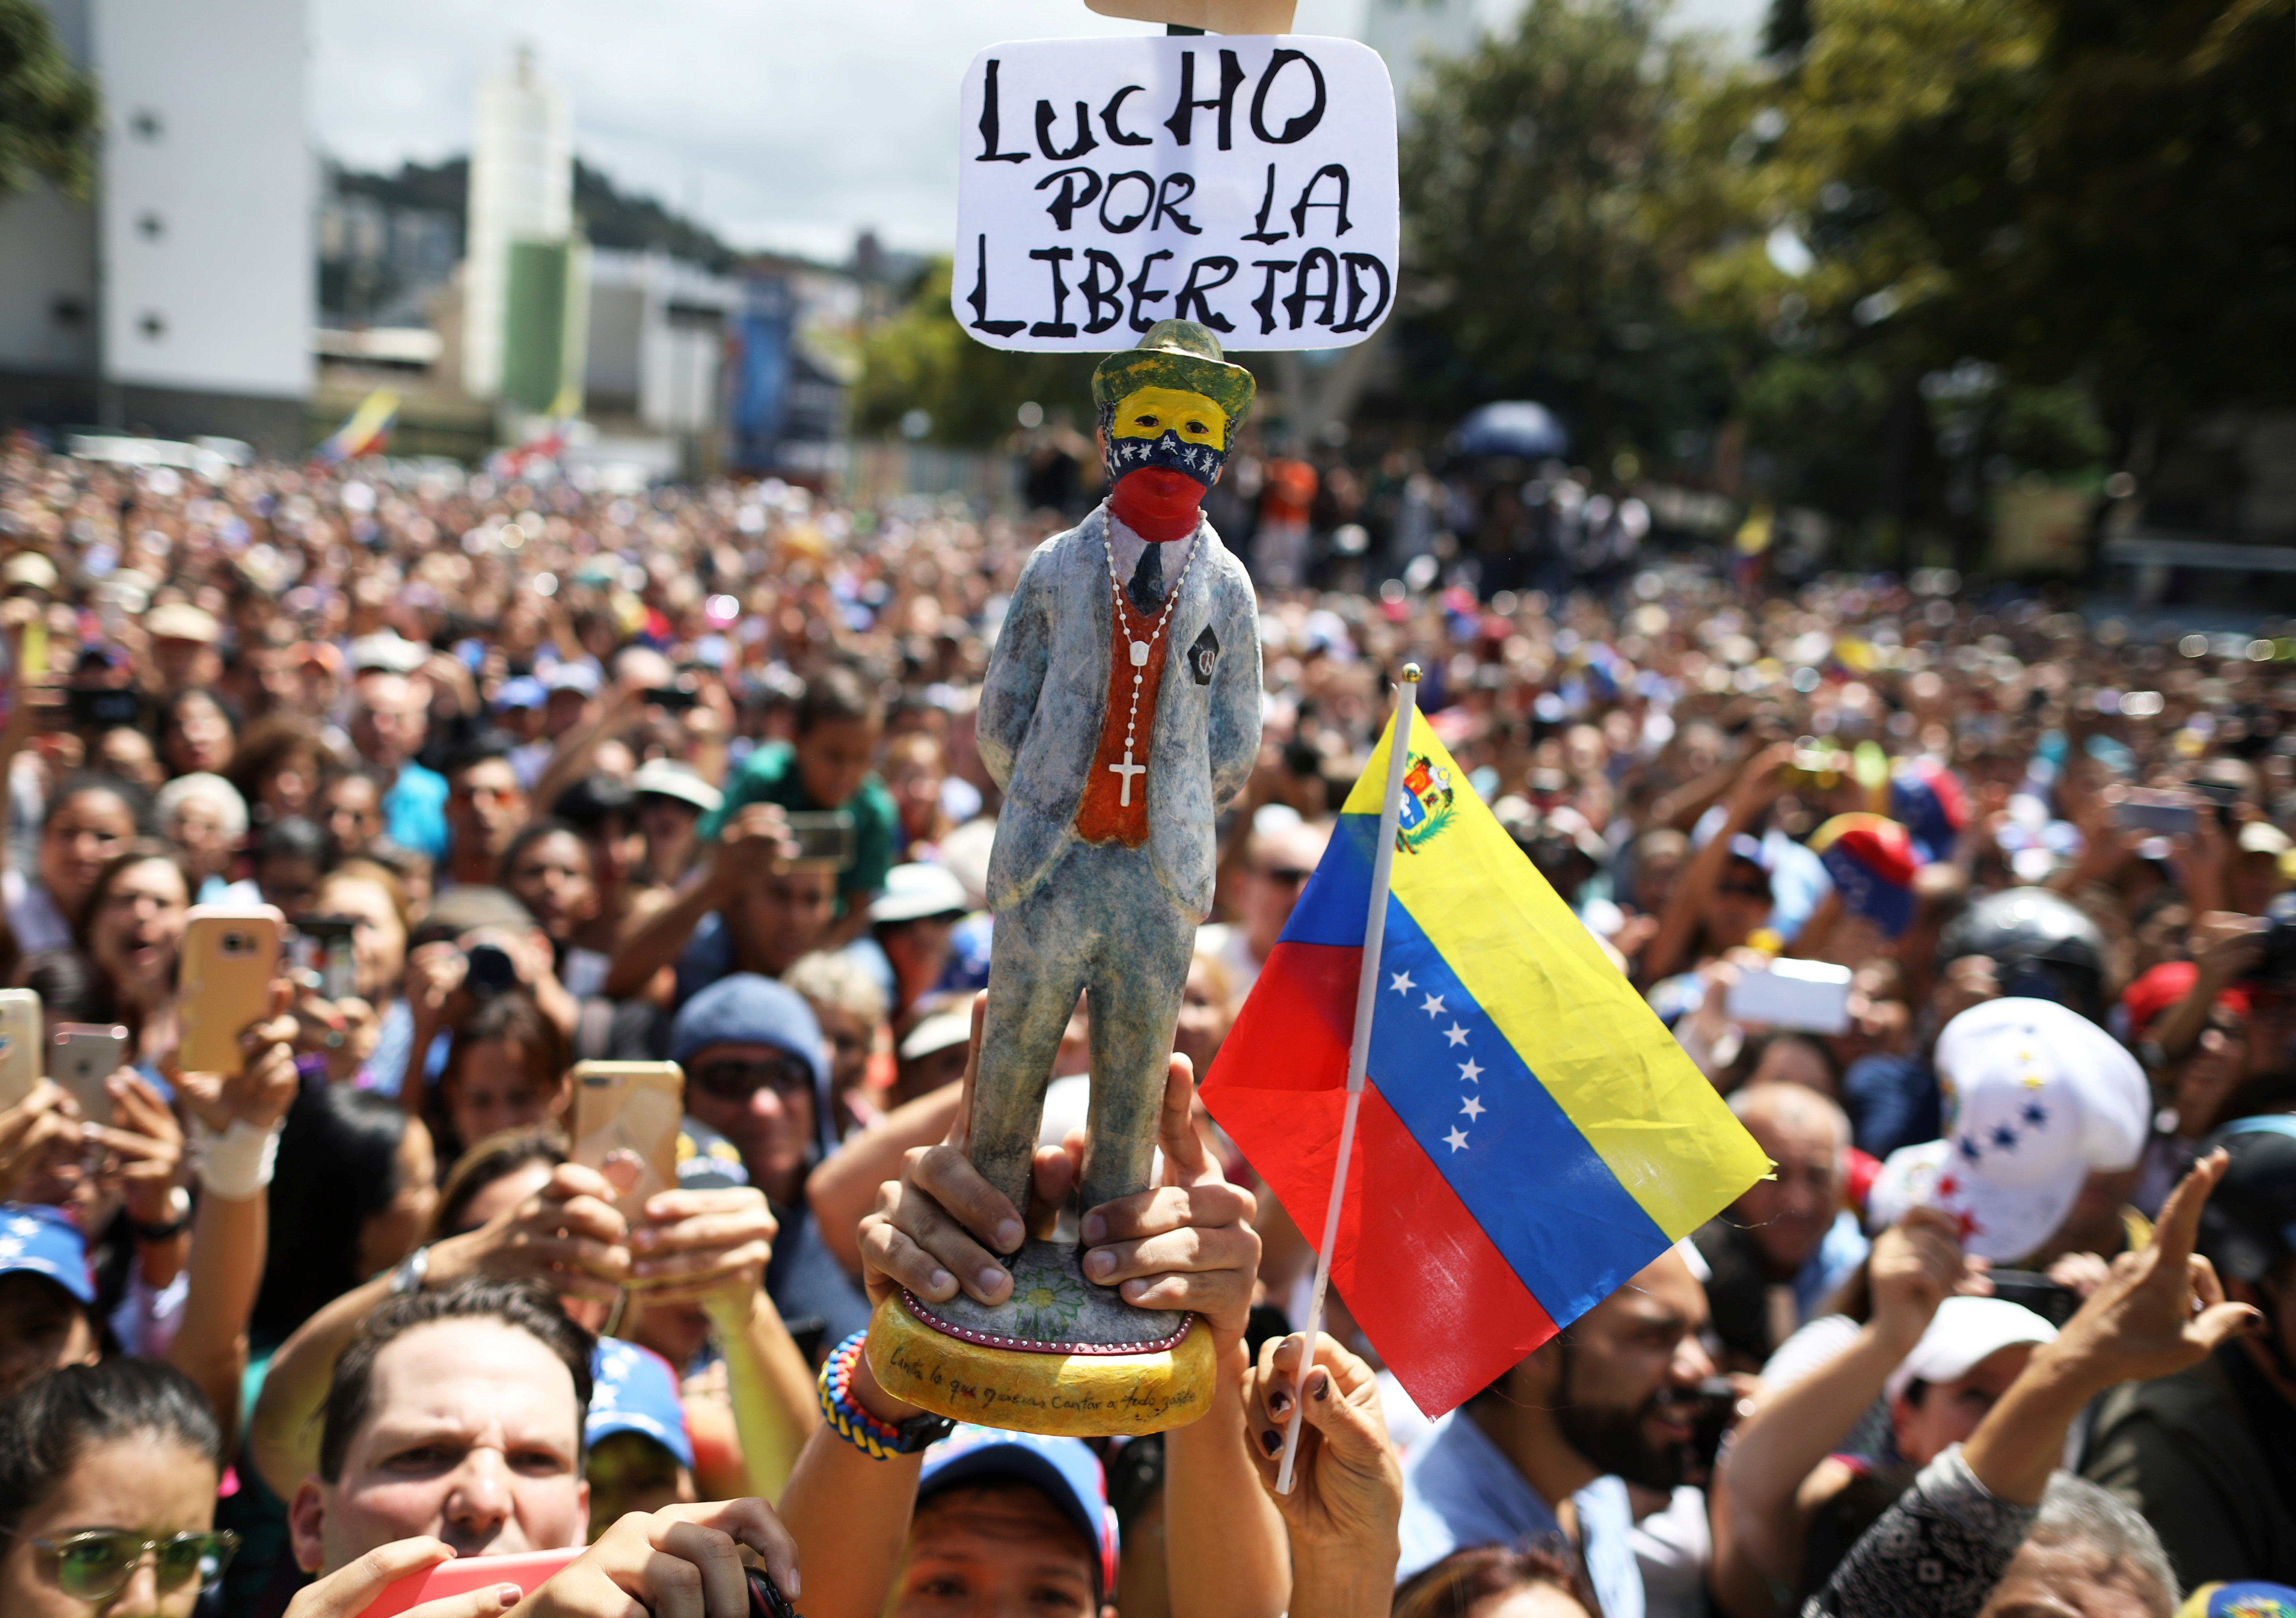 "Supporters of Venezuela's opposition leader Juan Guaido hold a figurine with a sign that reads: ""I fight for freedom"", during a rally with members of the Venezuela's National Assembly regarding an amnesty law project for members of the military, in Caracas, Venezuela, January 26, 2019. REUTERS/Andres Martinez Casares"